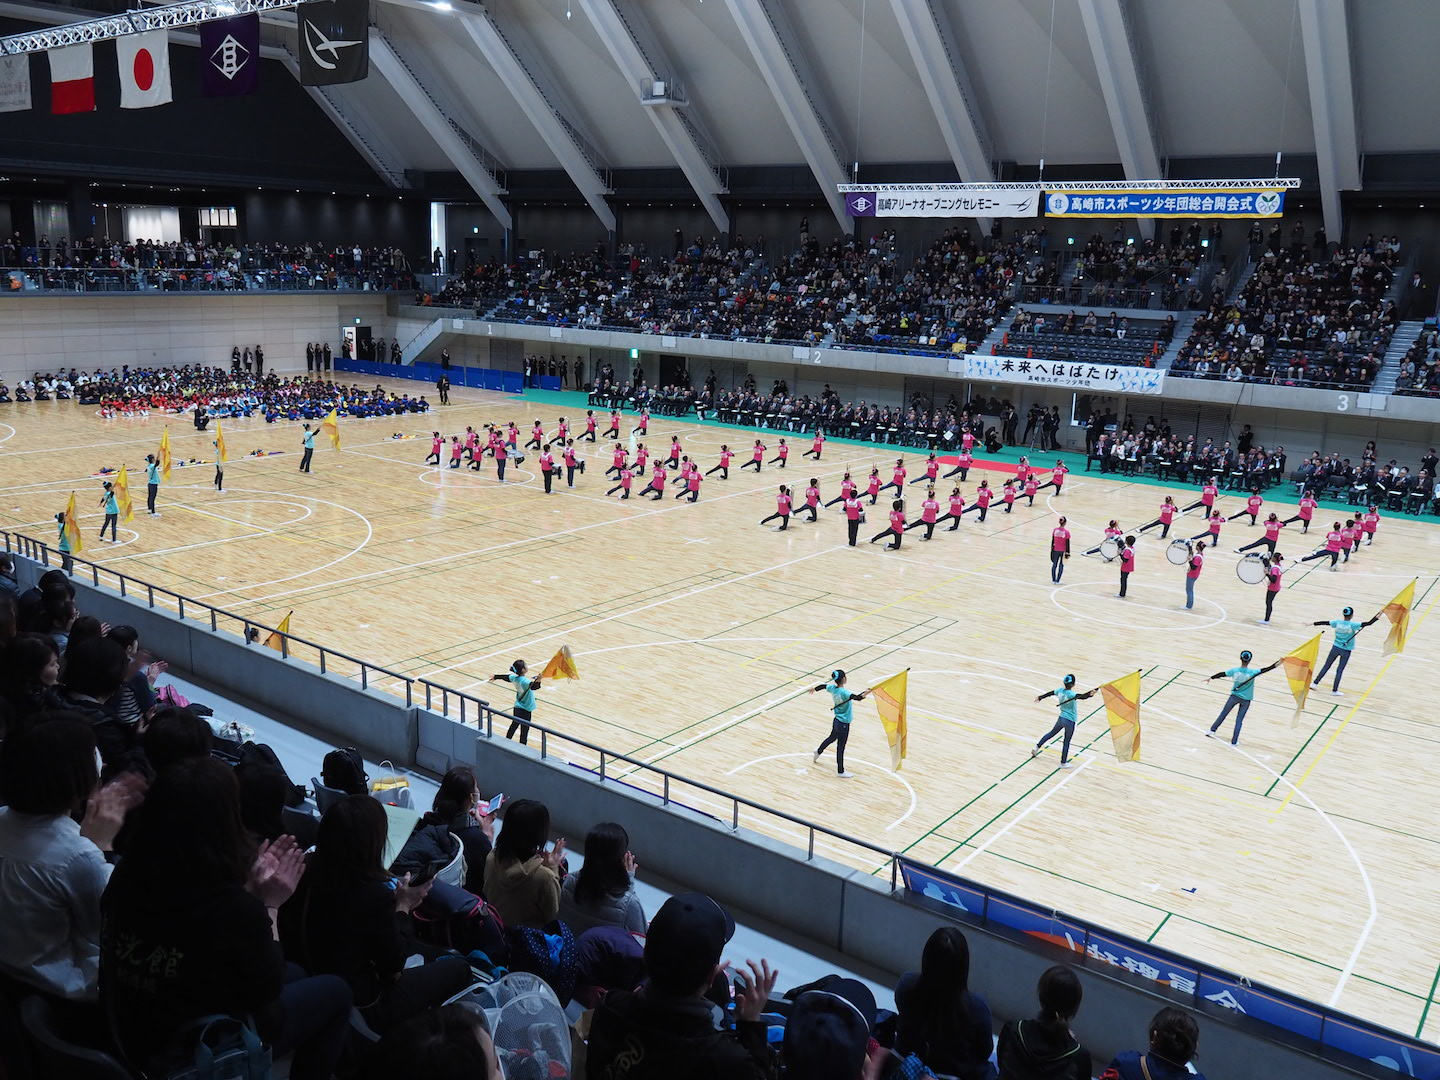 Takasaki Arena Opening Ceremony<br />Performed by<br />The Takasaki Technical Leaders Marching Band 3